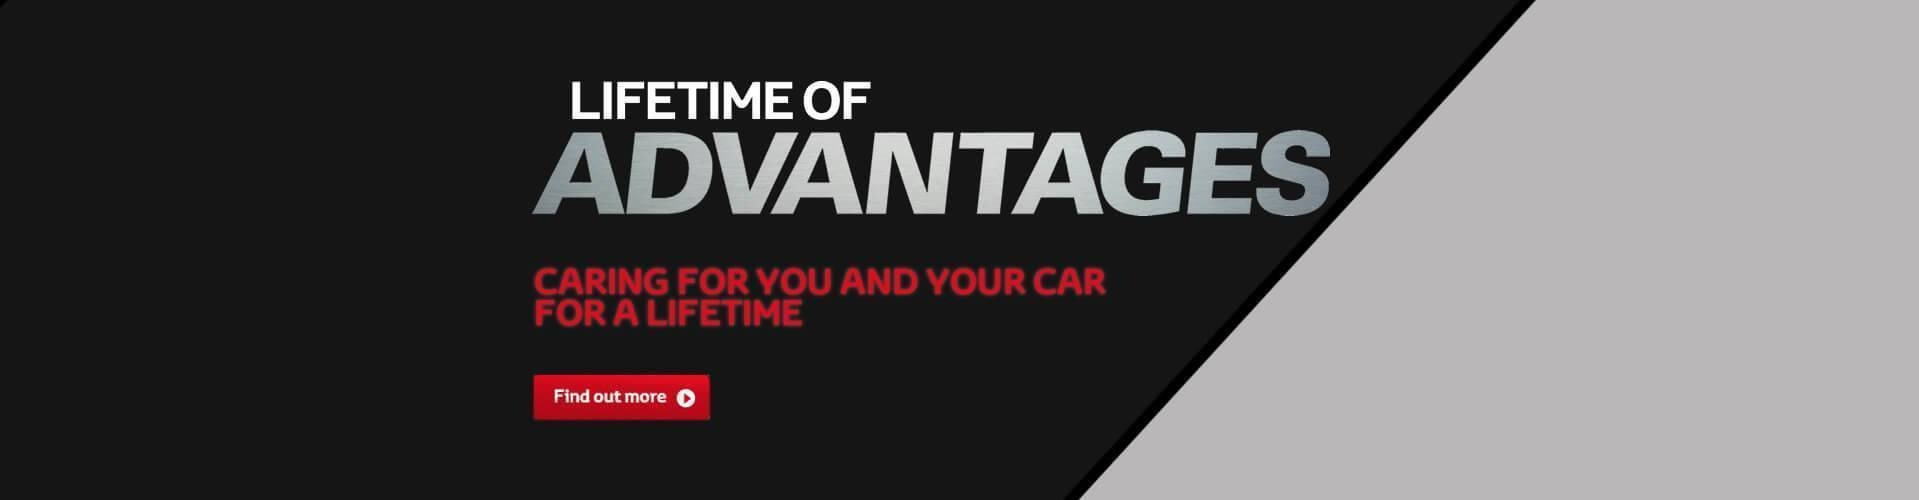 Toyota Lifetime Of Advantages